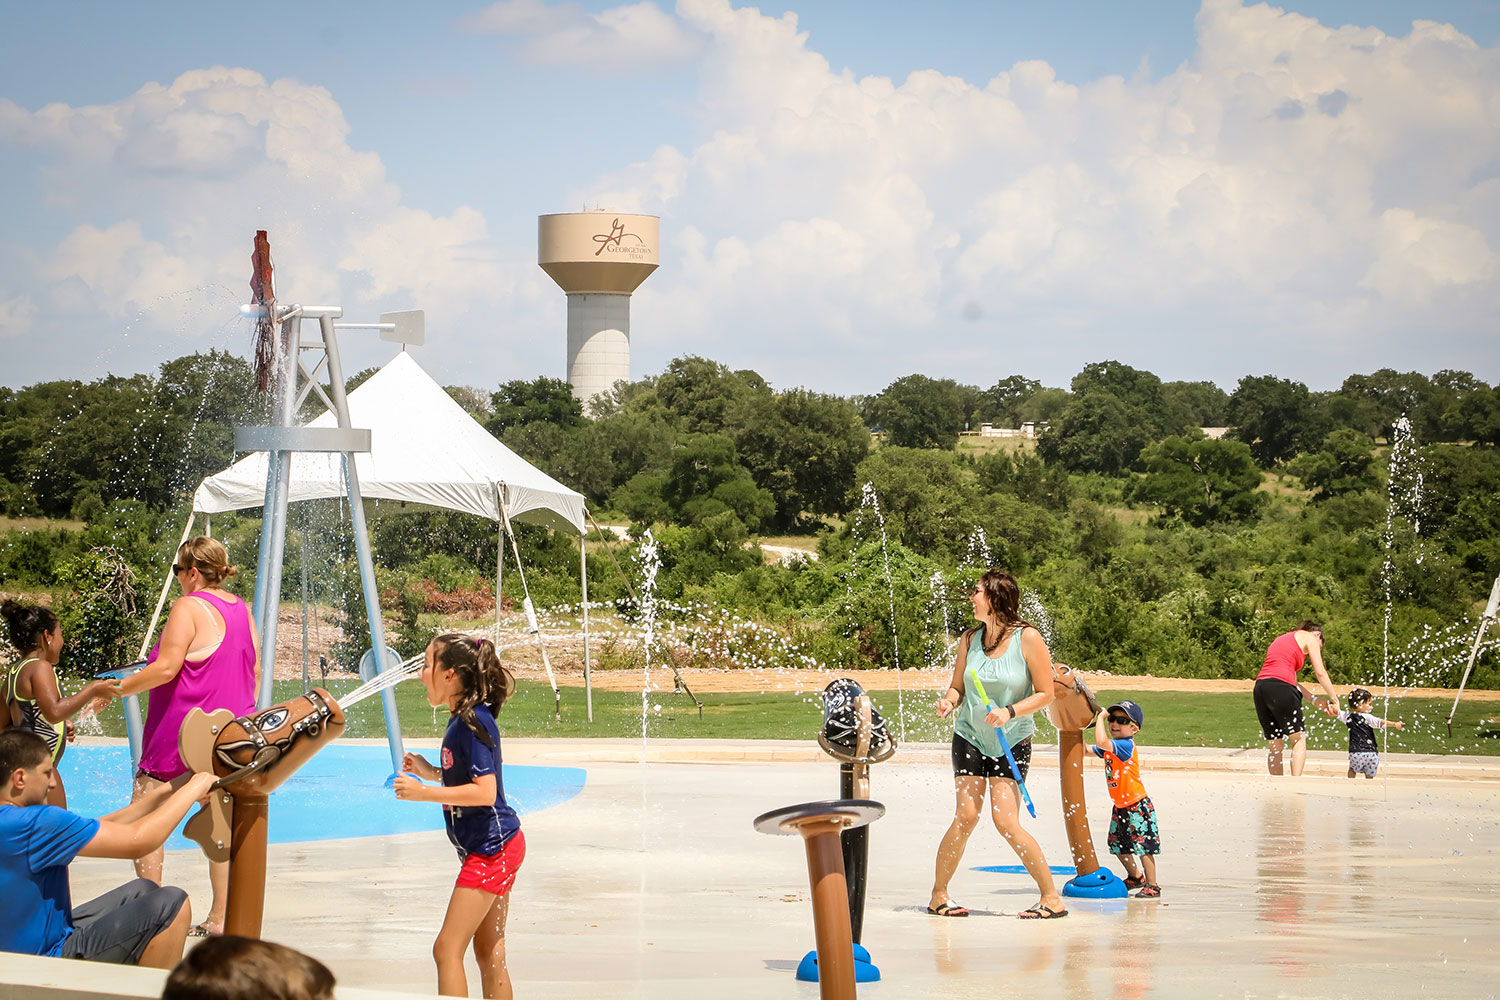 Families playing at the splash pad at Garey Park in Georgetown, TX